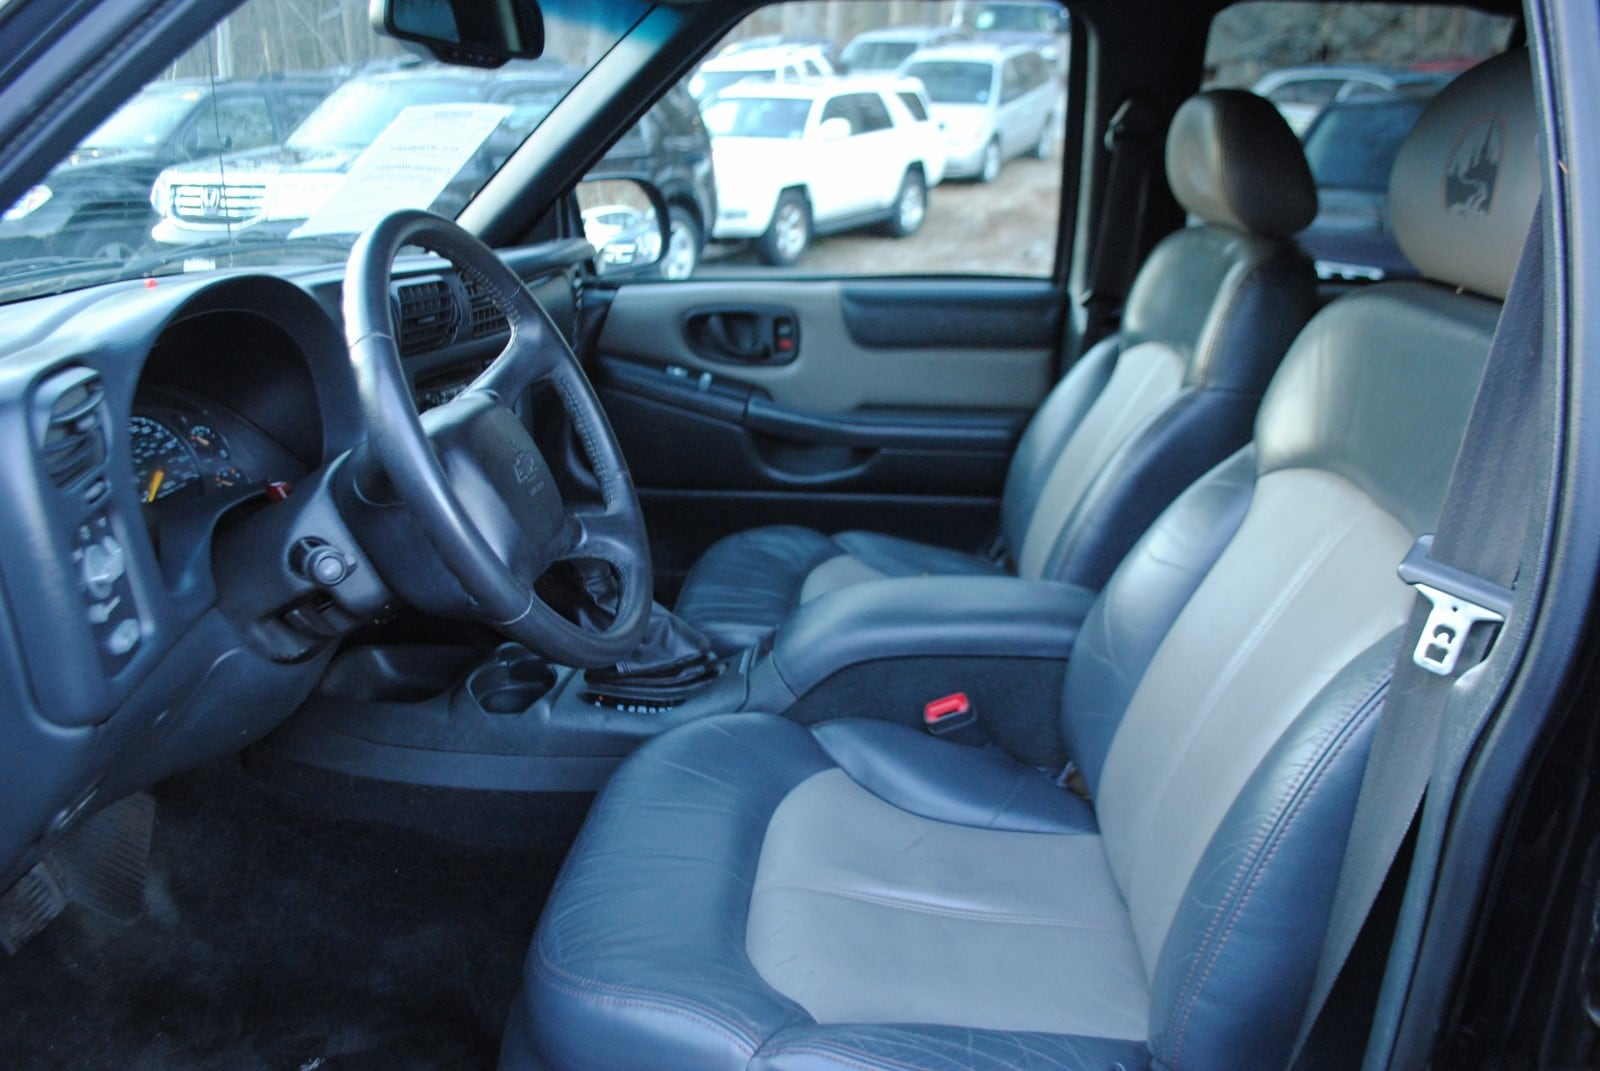 Used 2001 Chevrolet Blazer For Sale at Ramsey Corp  | VIN